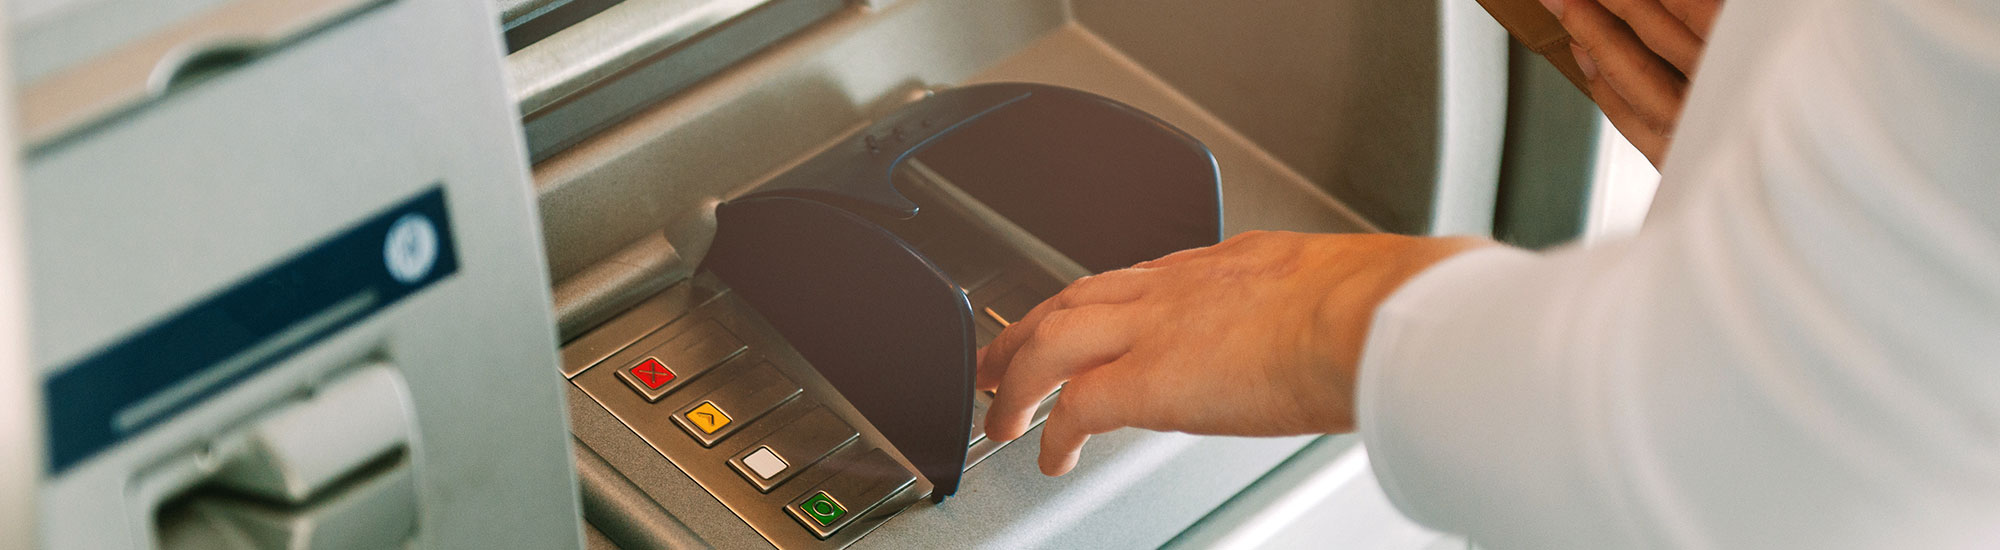 close-up of person using ATM